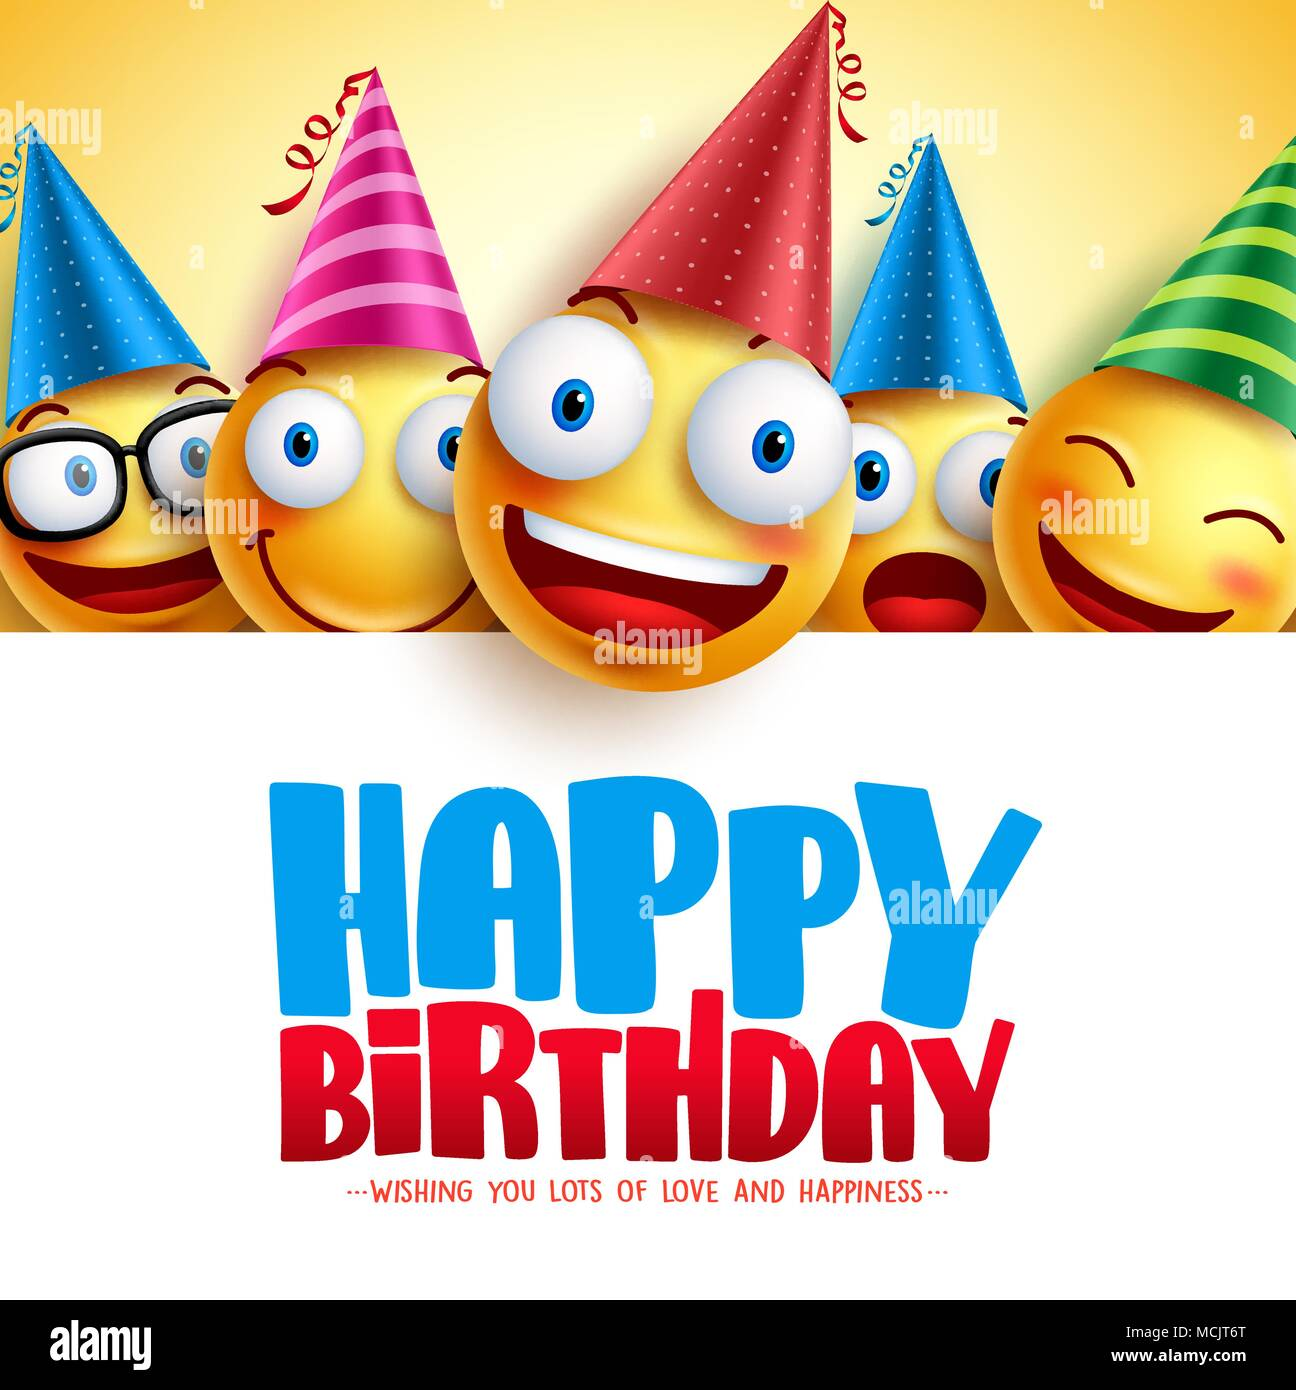 Happy Birthday Smileys Vector Background Design With Yellow Funny And Emoticons Greeting Text In Empty White